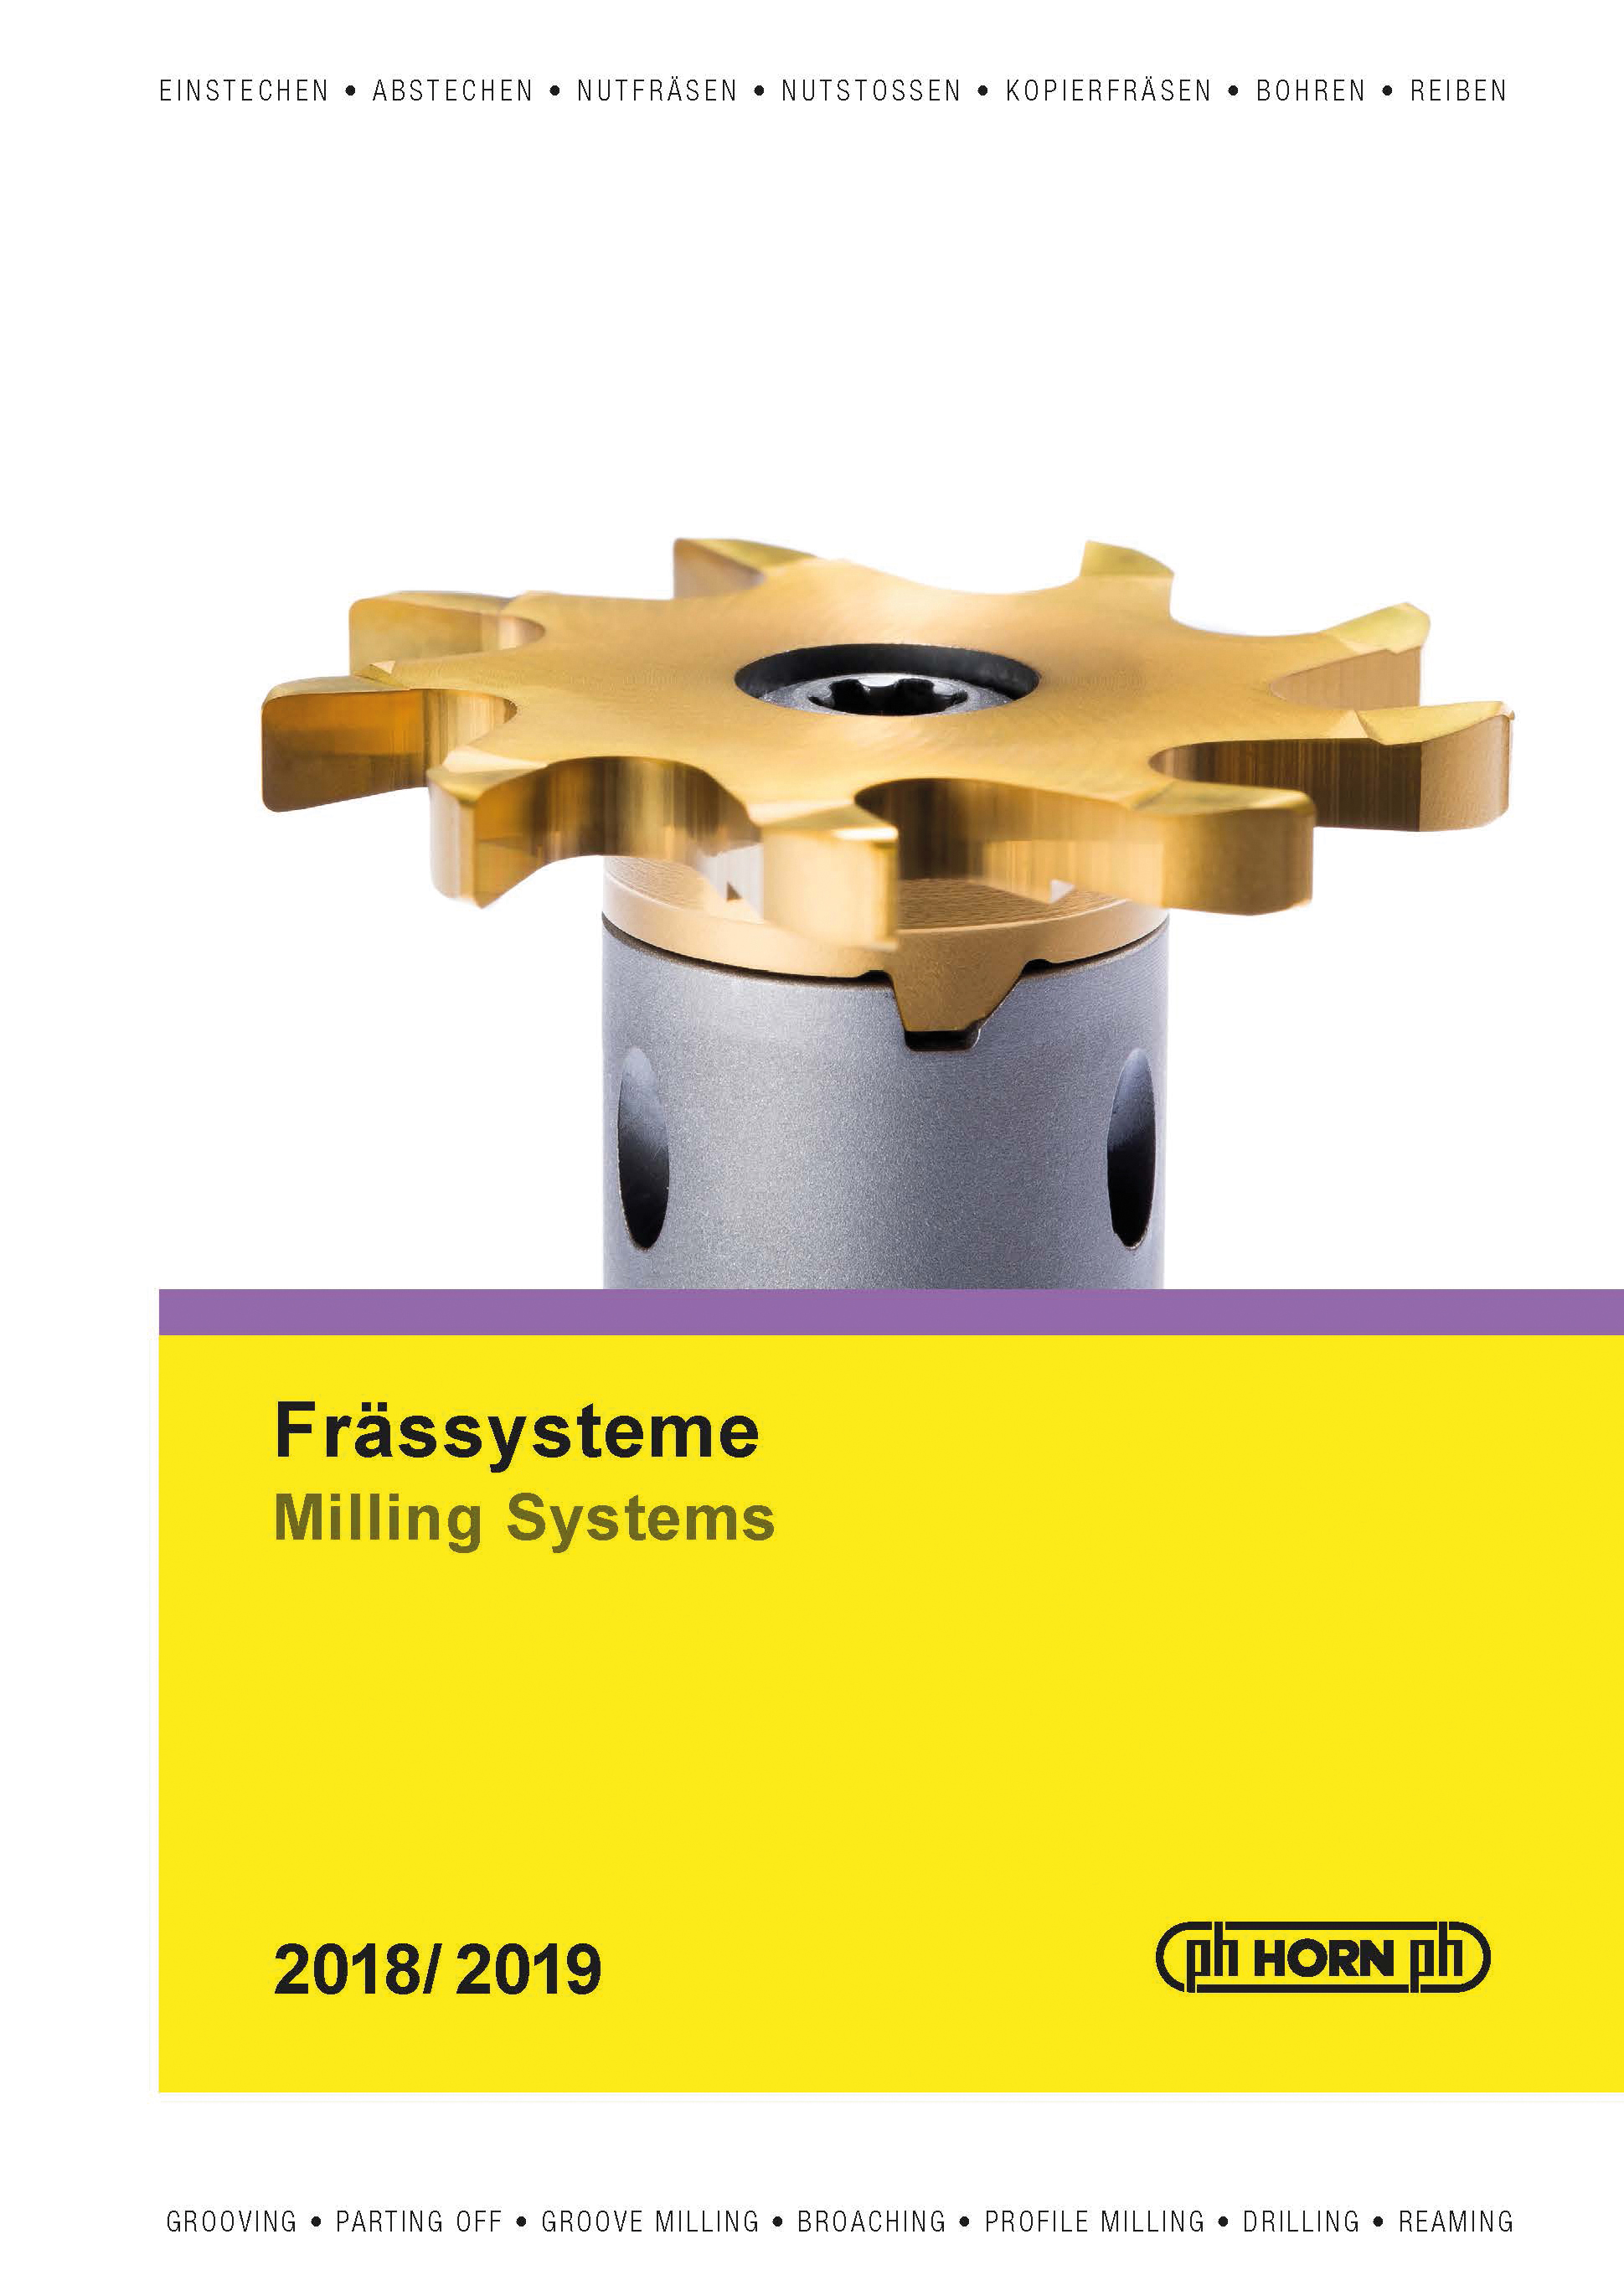 Download Milling Systems Catalogue